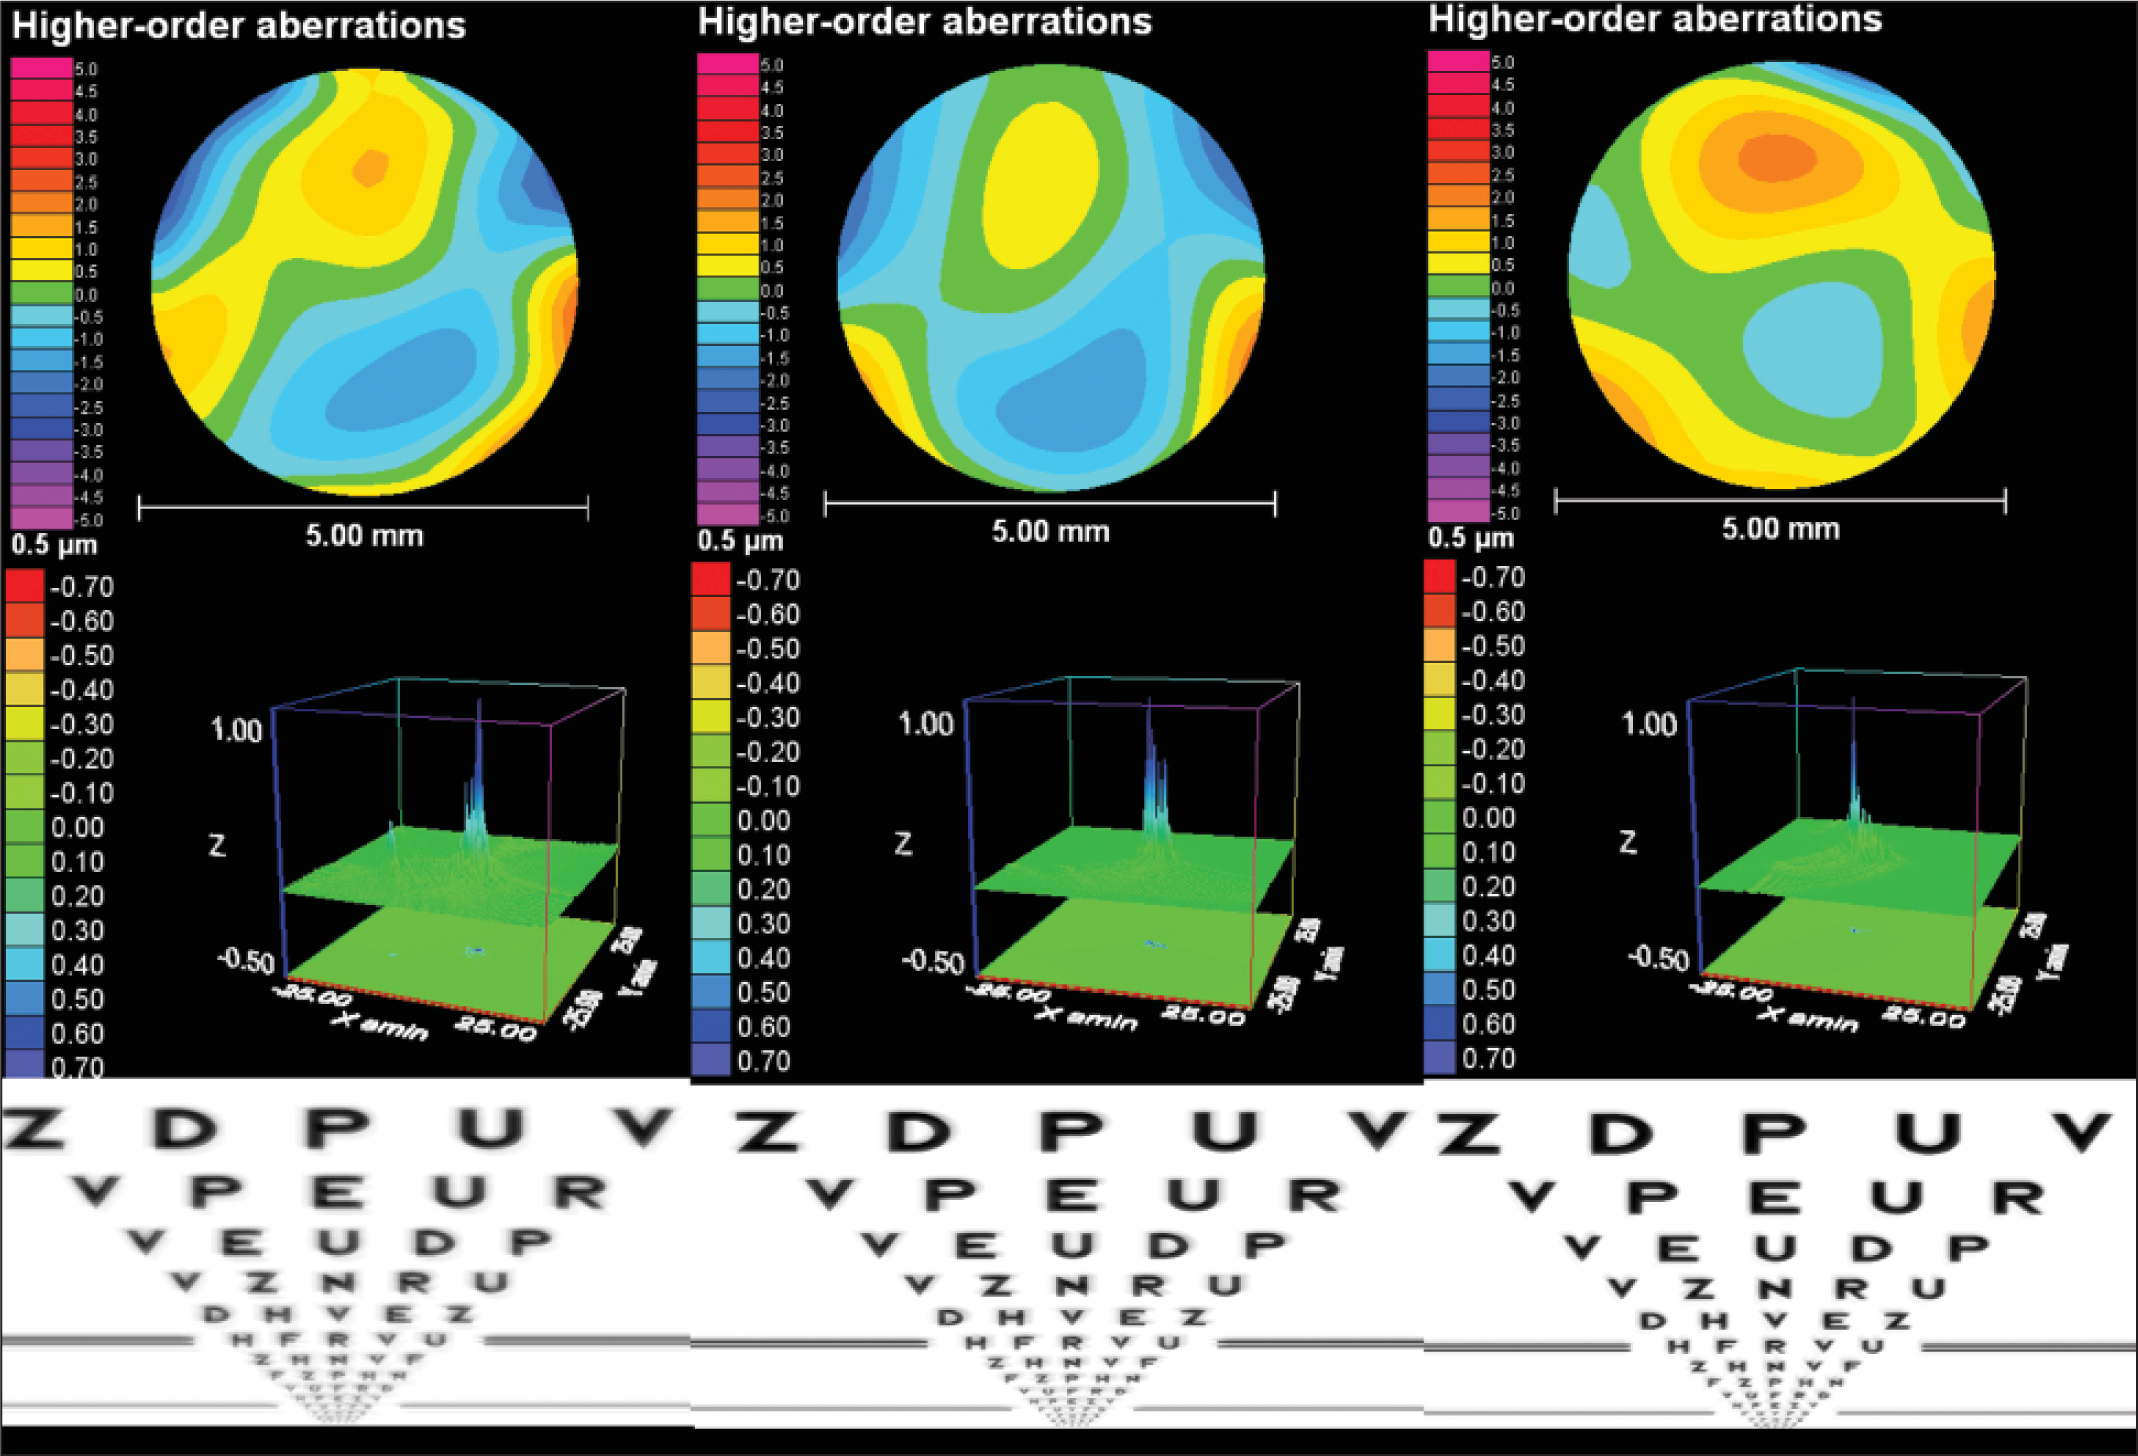 Comparative diagram showing the analysis of the in vivo intraocular optical quality for a 5.0-mm pupil of three cases implanted with one of the three models analyzed in this study. (Left) C-Loop haptic design of the refractive rotationally asymmetric multifocal intraocular lens (MIOL) without using a capsular tension ring (CTR). (Center) C-Loop haptic design of the refractive rotationally asymmetric MIOL using a CTR. (Right) Plate-haptic design of the refractive rotationally asymmetric MIOL. Top row: intraocular wavefront higher-order aberrations. Middle row: three-dimensional point spread function. Bottom row: Snellen optotype simulation considering only the effect of higher-order aberrations. All cases presented similar manifest refractive conditions postoperatively.